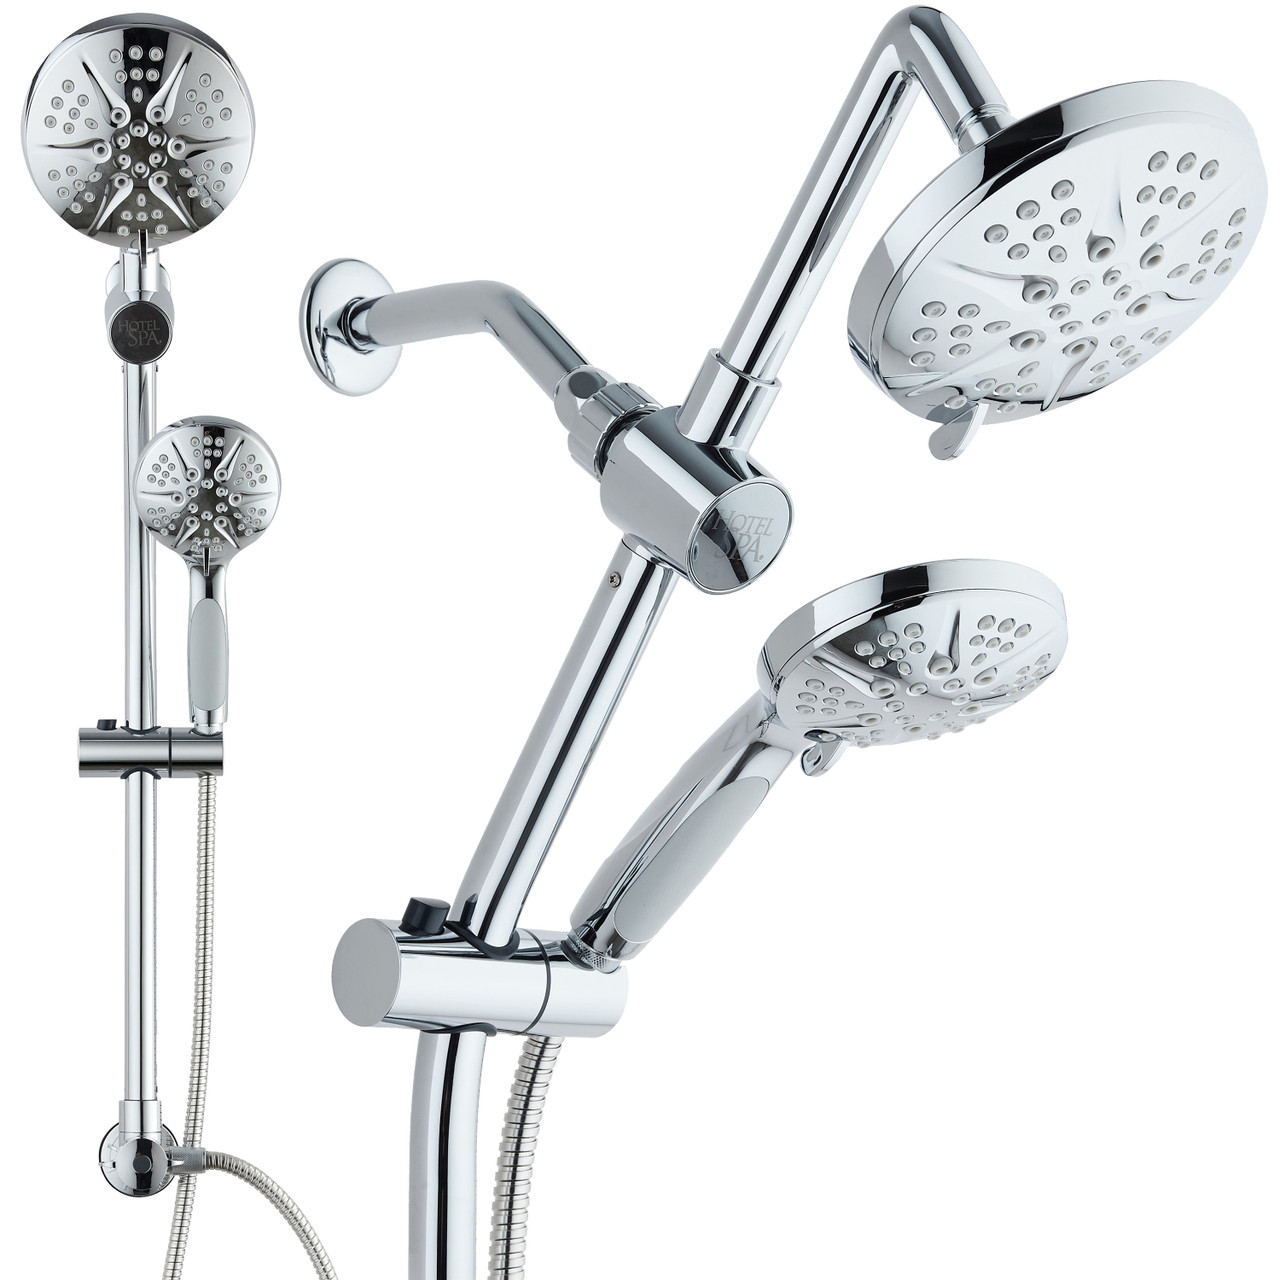 Spa Station 34 Adjustable Drill Free Slide Bar With 48 Setting Showerhead Combo Height Extension Arm 3 Way Rain Handheld Shower Head Low Reach